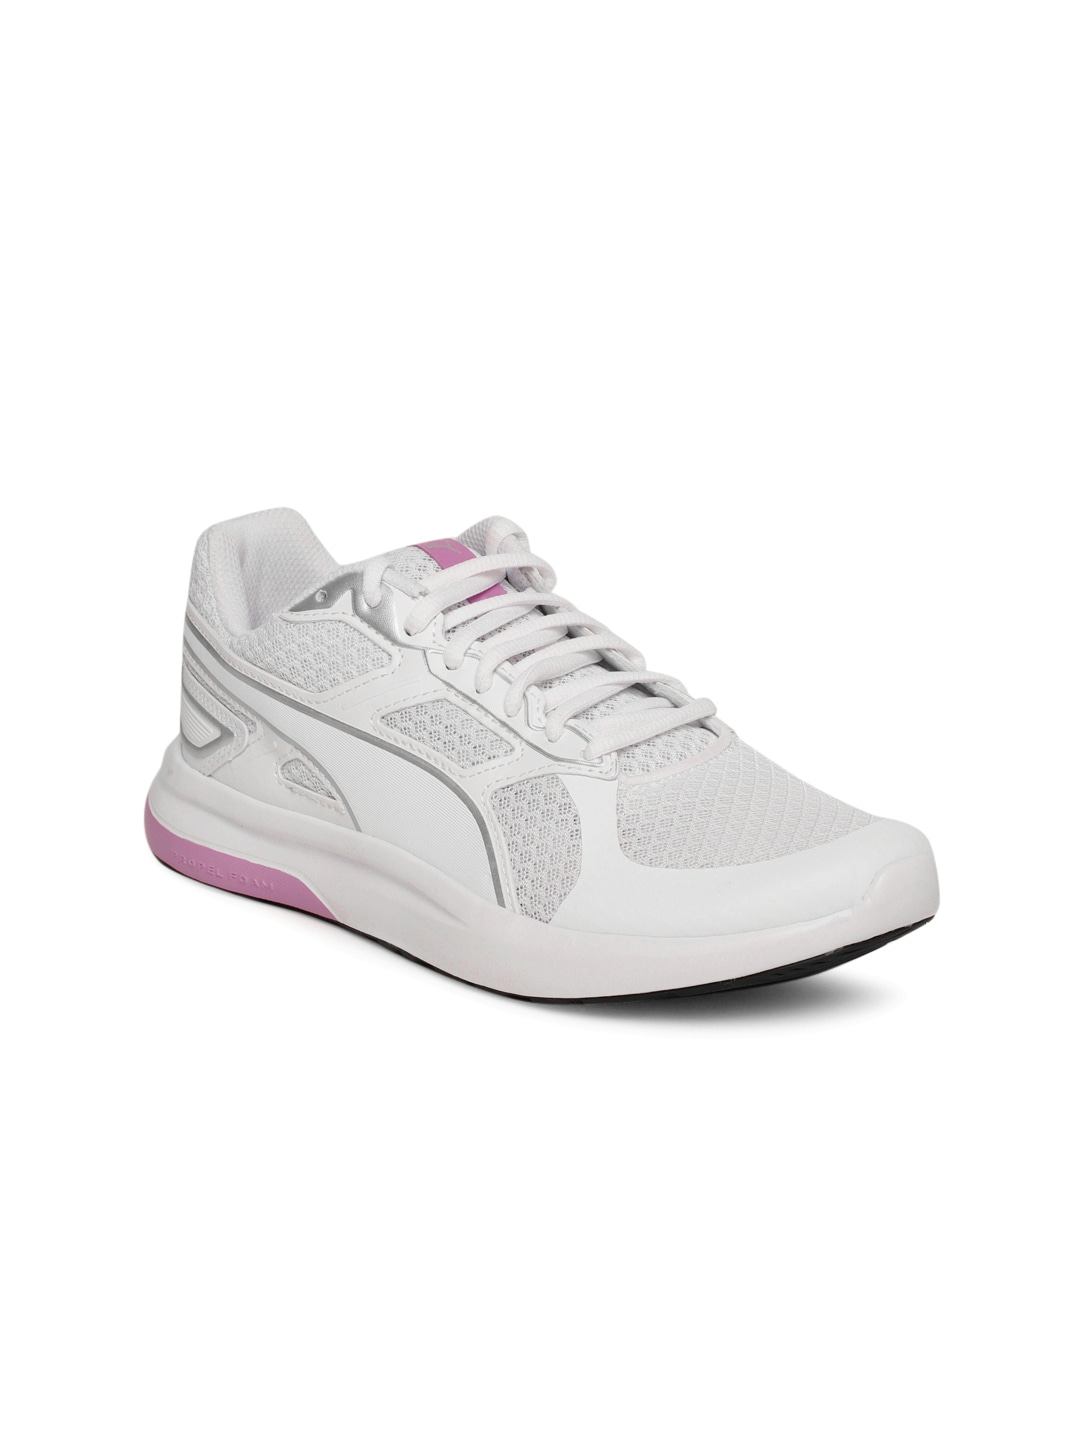 magasin en ligne b2d12 338c9 Puma Women White Escaper Tech Sneakers